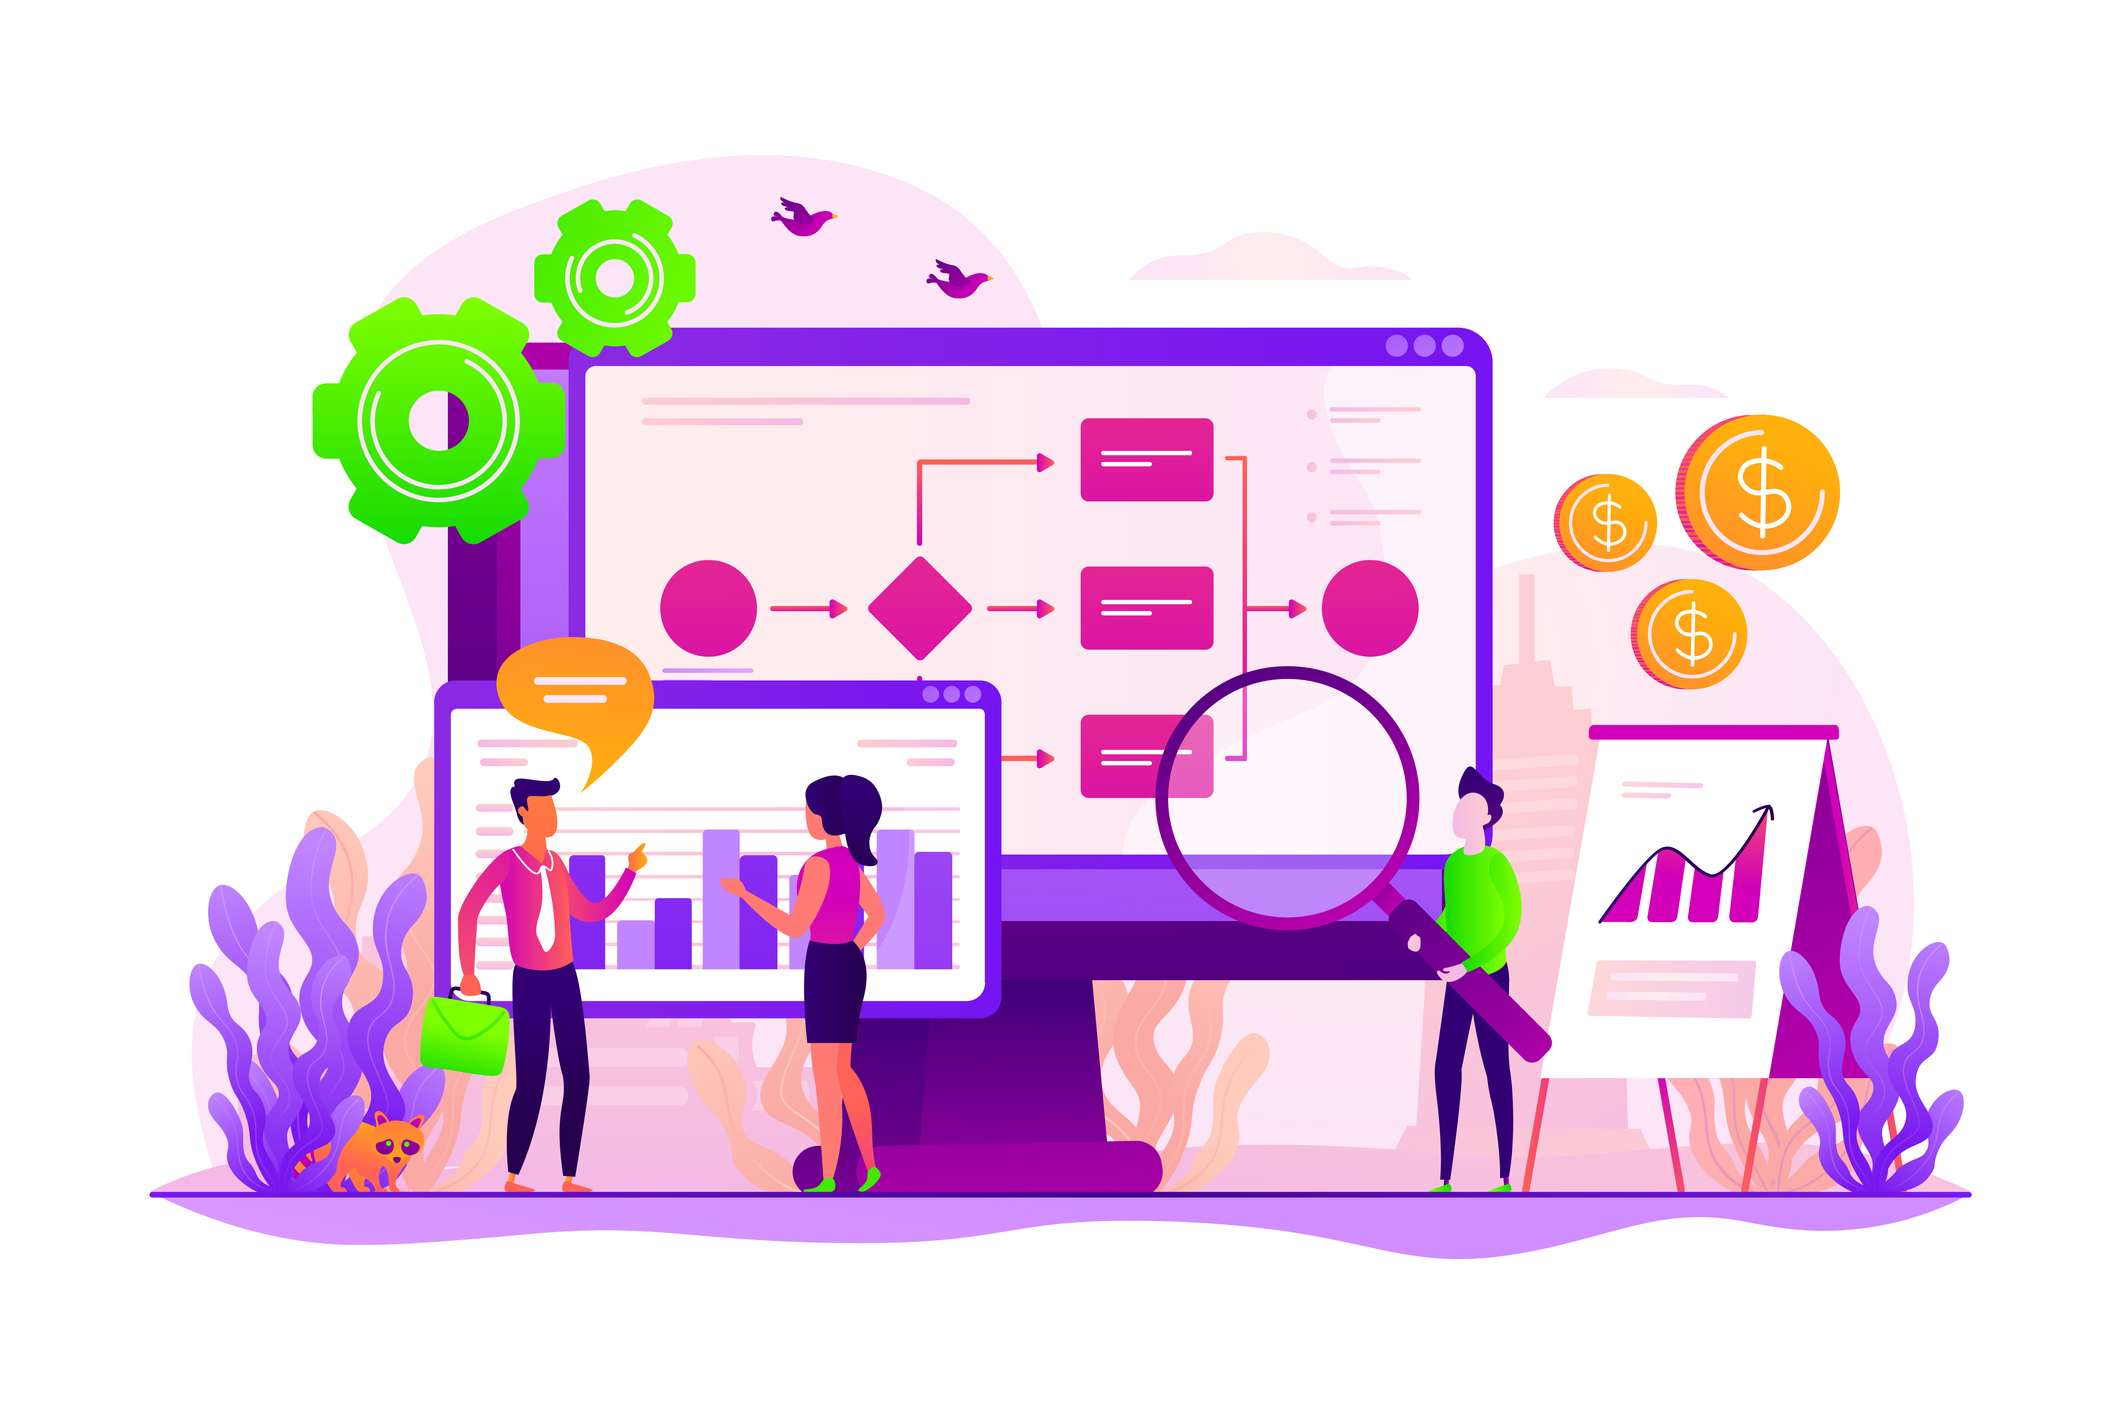 Business process organization and analytics. Business process visualization and representation, automated workflow system concept. Vector concept creative illustration